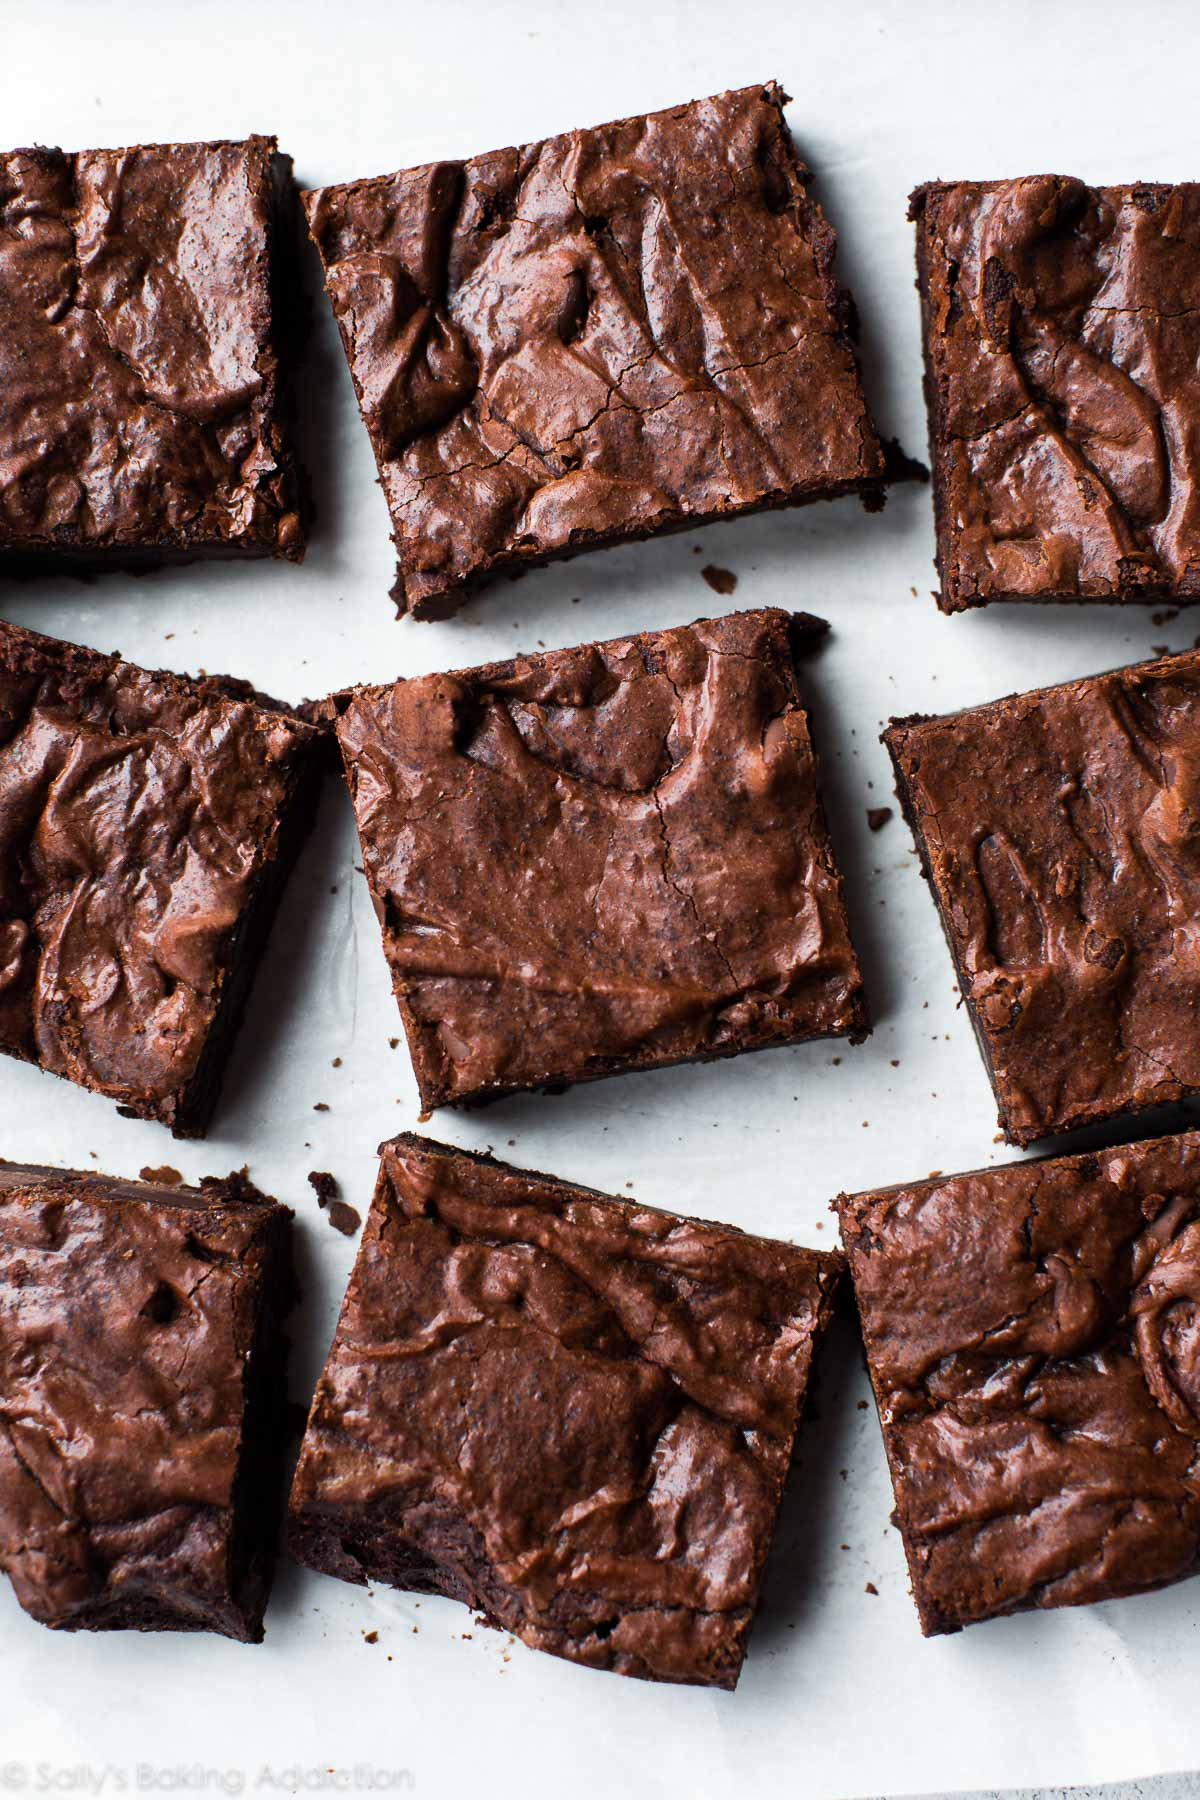 Seriously Fudgy Homemade Brownies - Sallys Baking Addiction